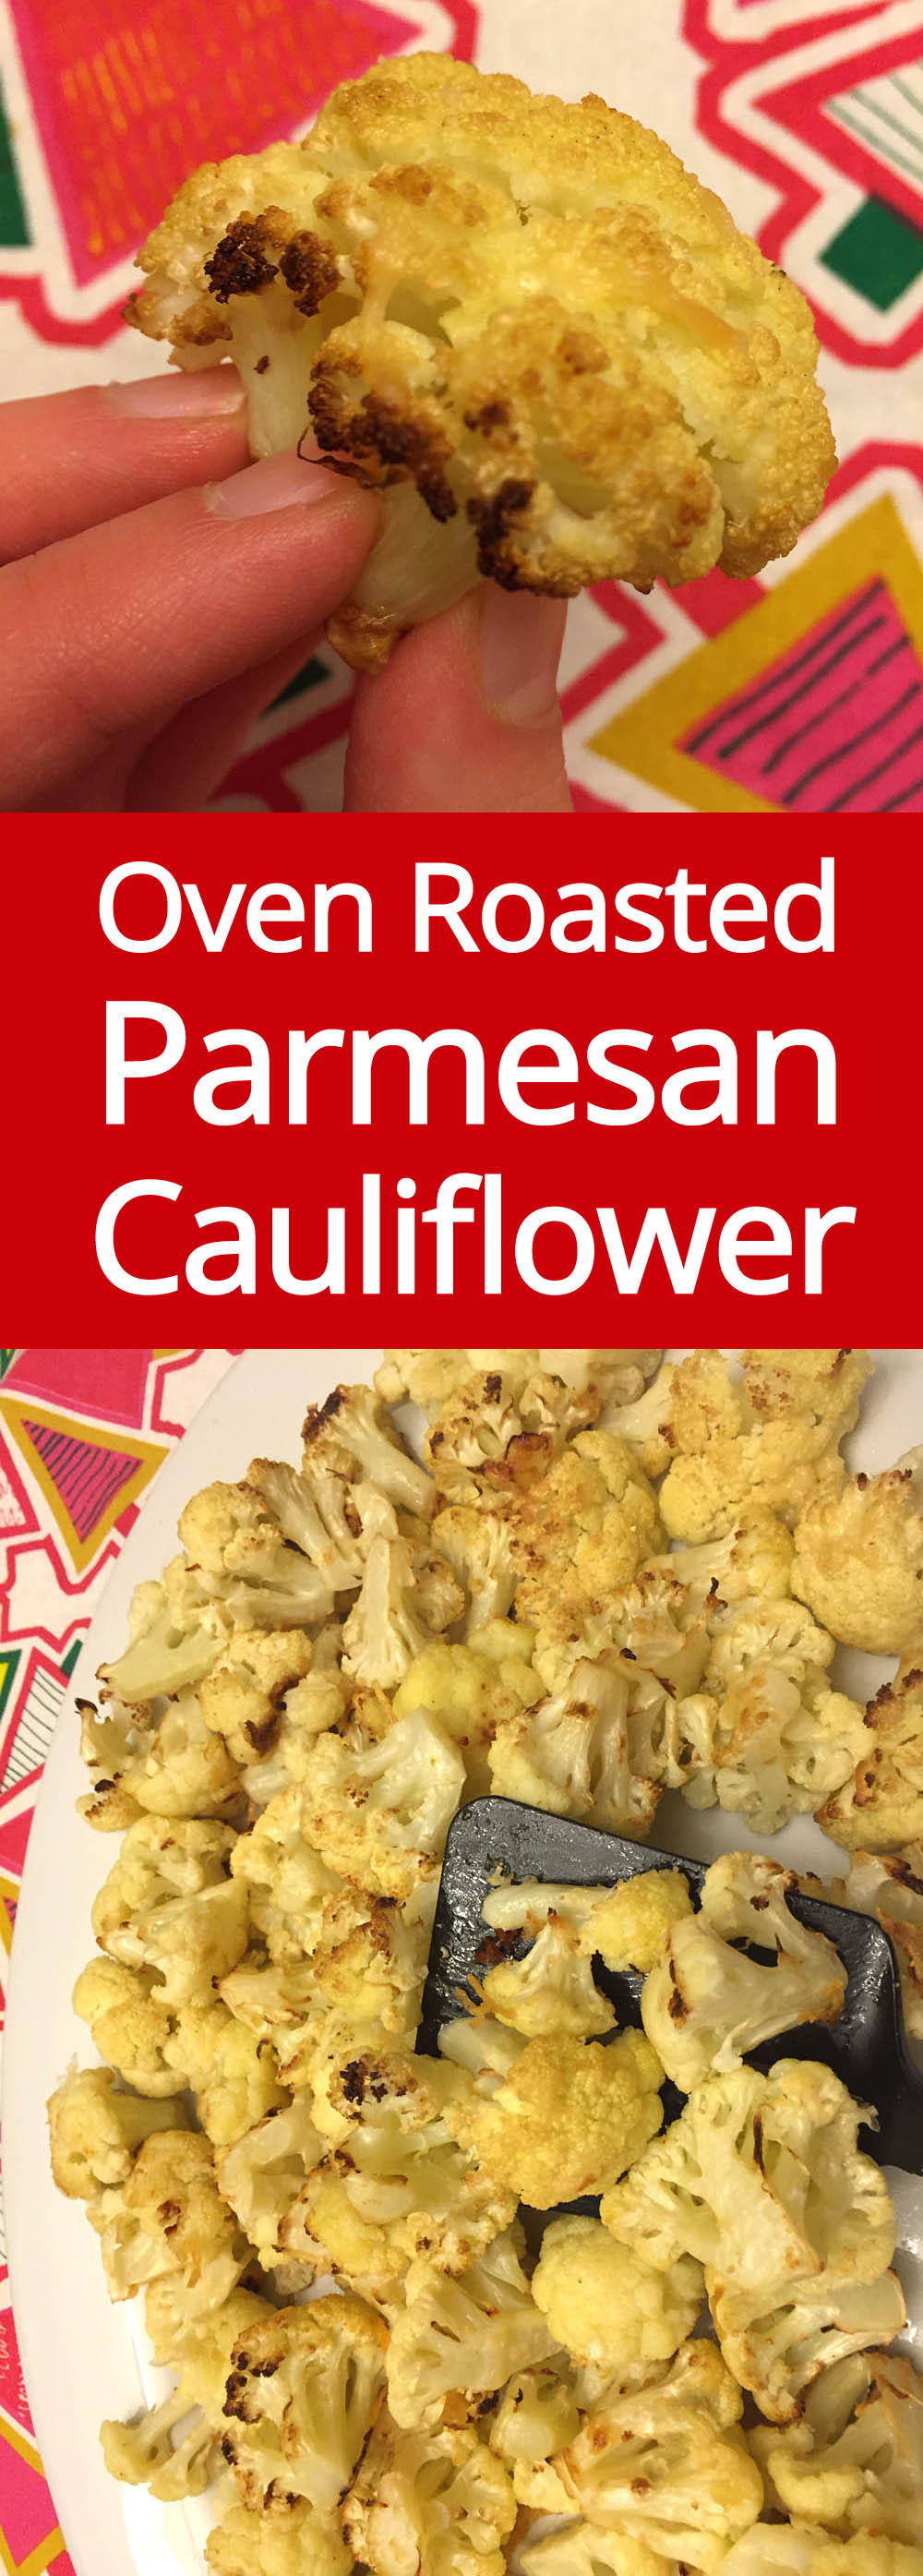 This roasted Parmesan cauliflower is amazing! Roasted cauliflower is my favorite way of eating cauliflower :) YUM YUM YUM!